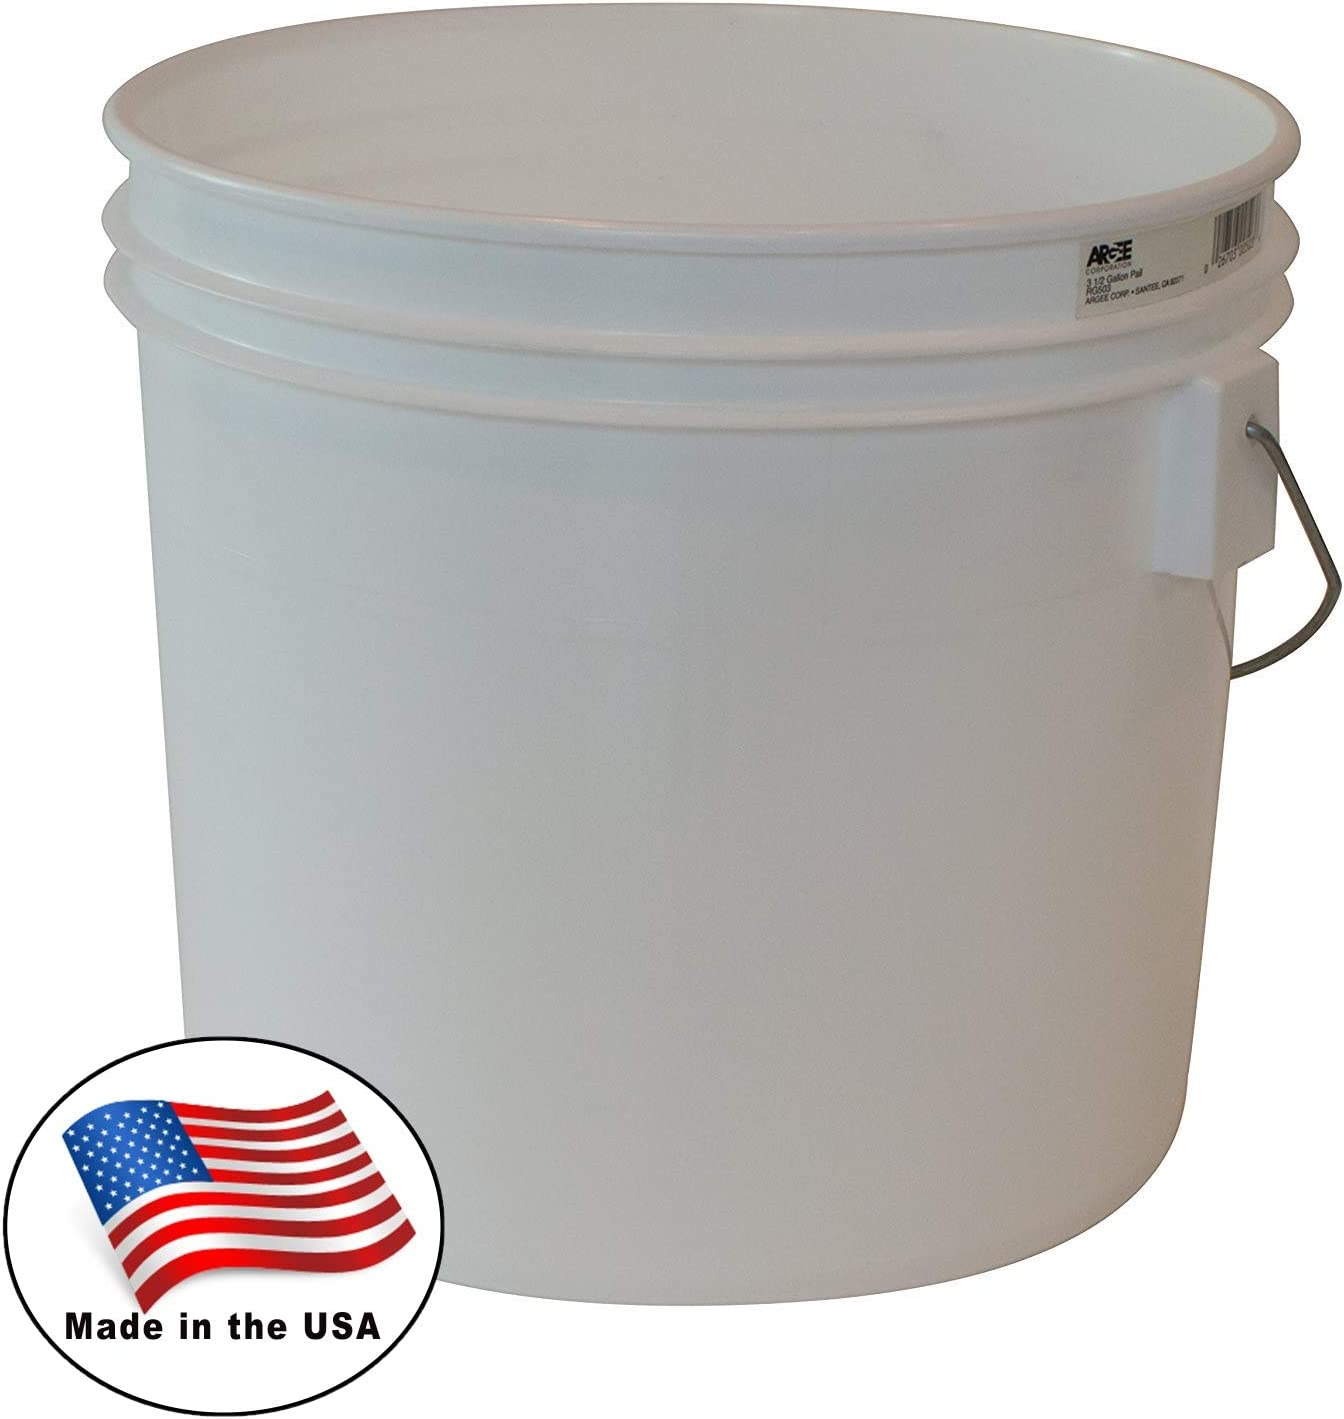 Argee RG503/10 Bucket, 3.5 gallon, White, 10 Count